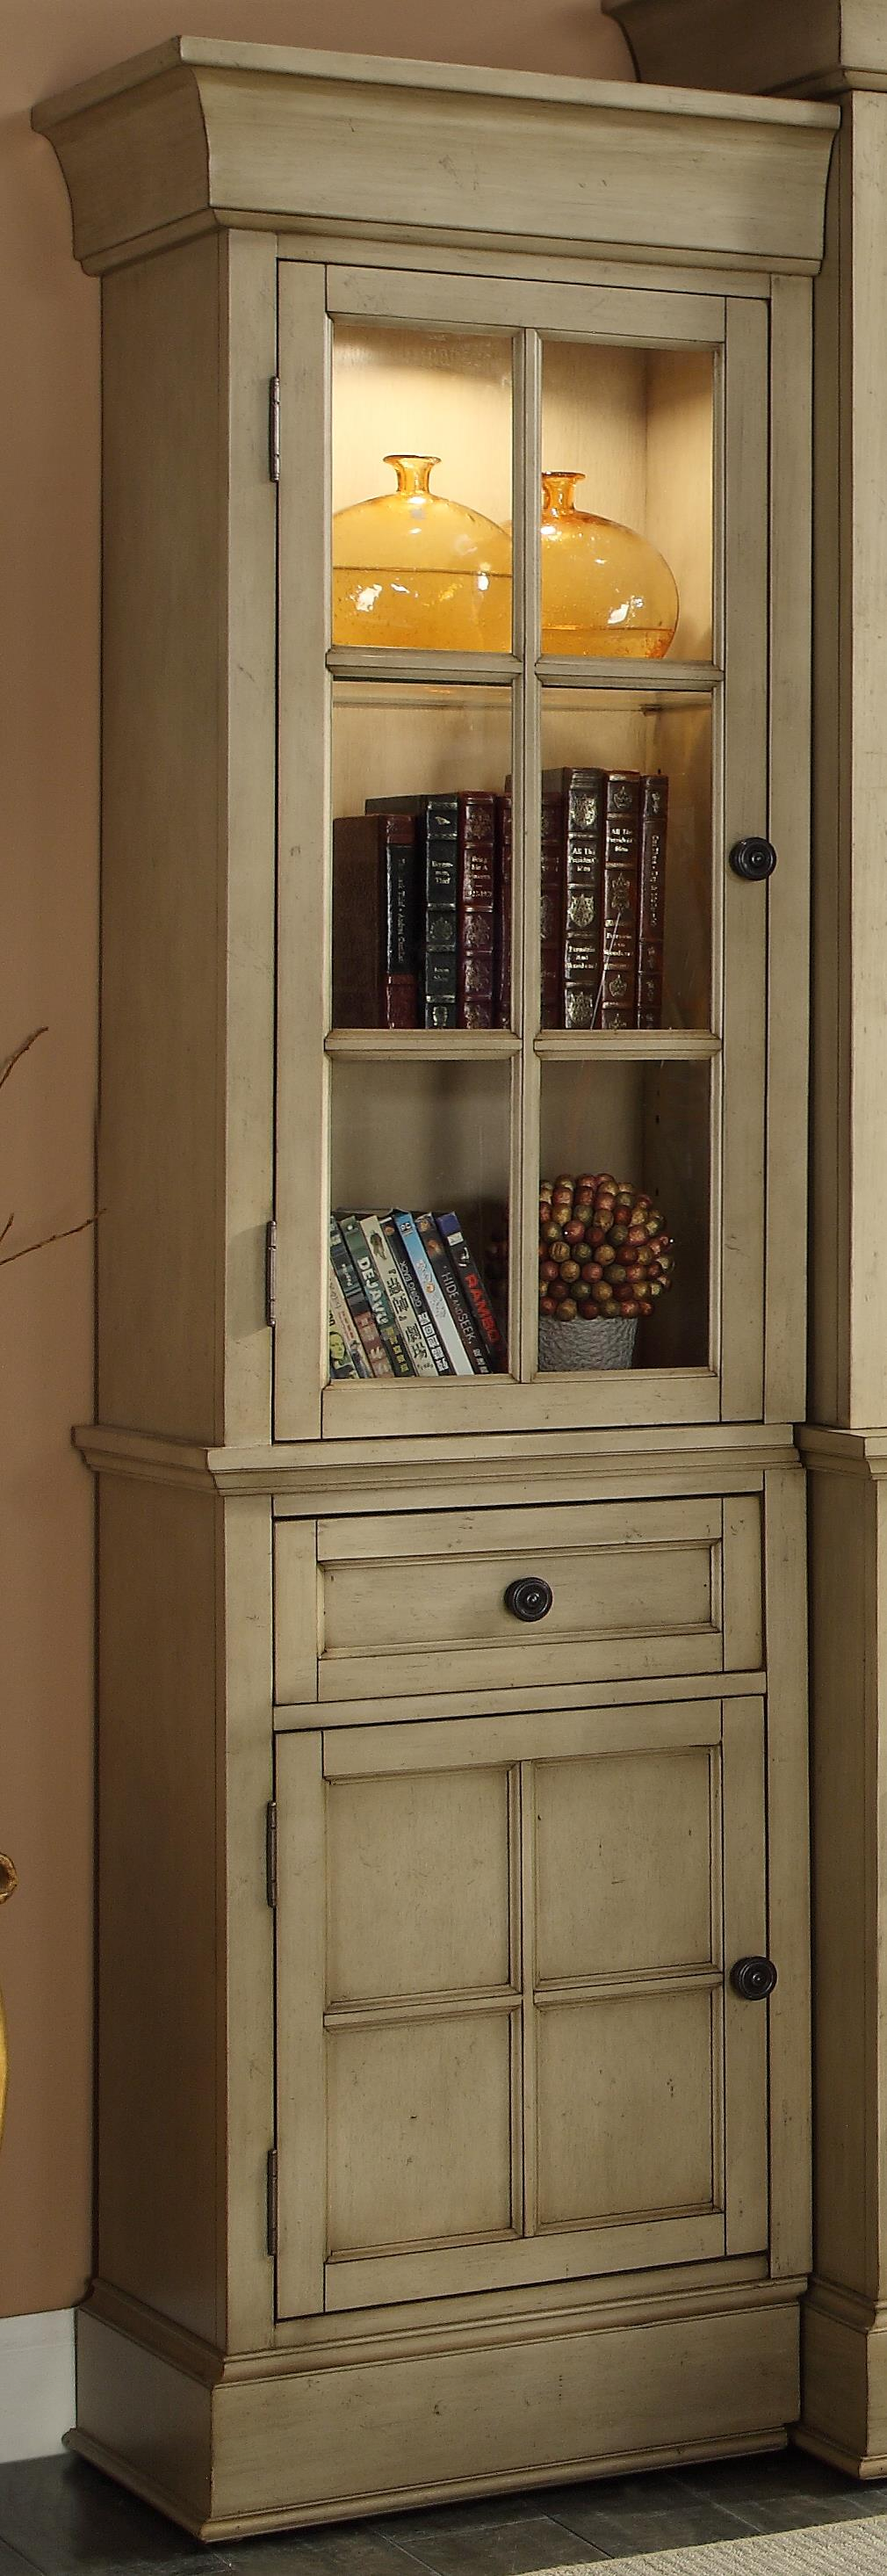 Legends Furniture Bristol Collection Right Bookcase Pier - Item Number: ZBRT-3002